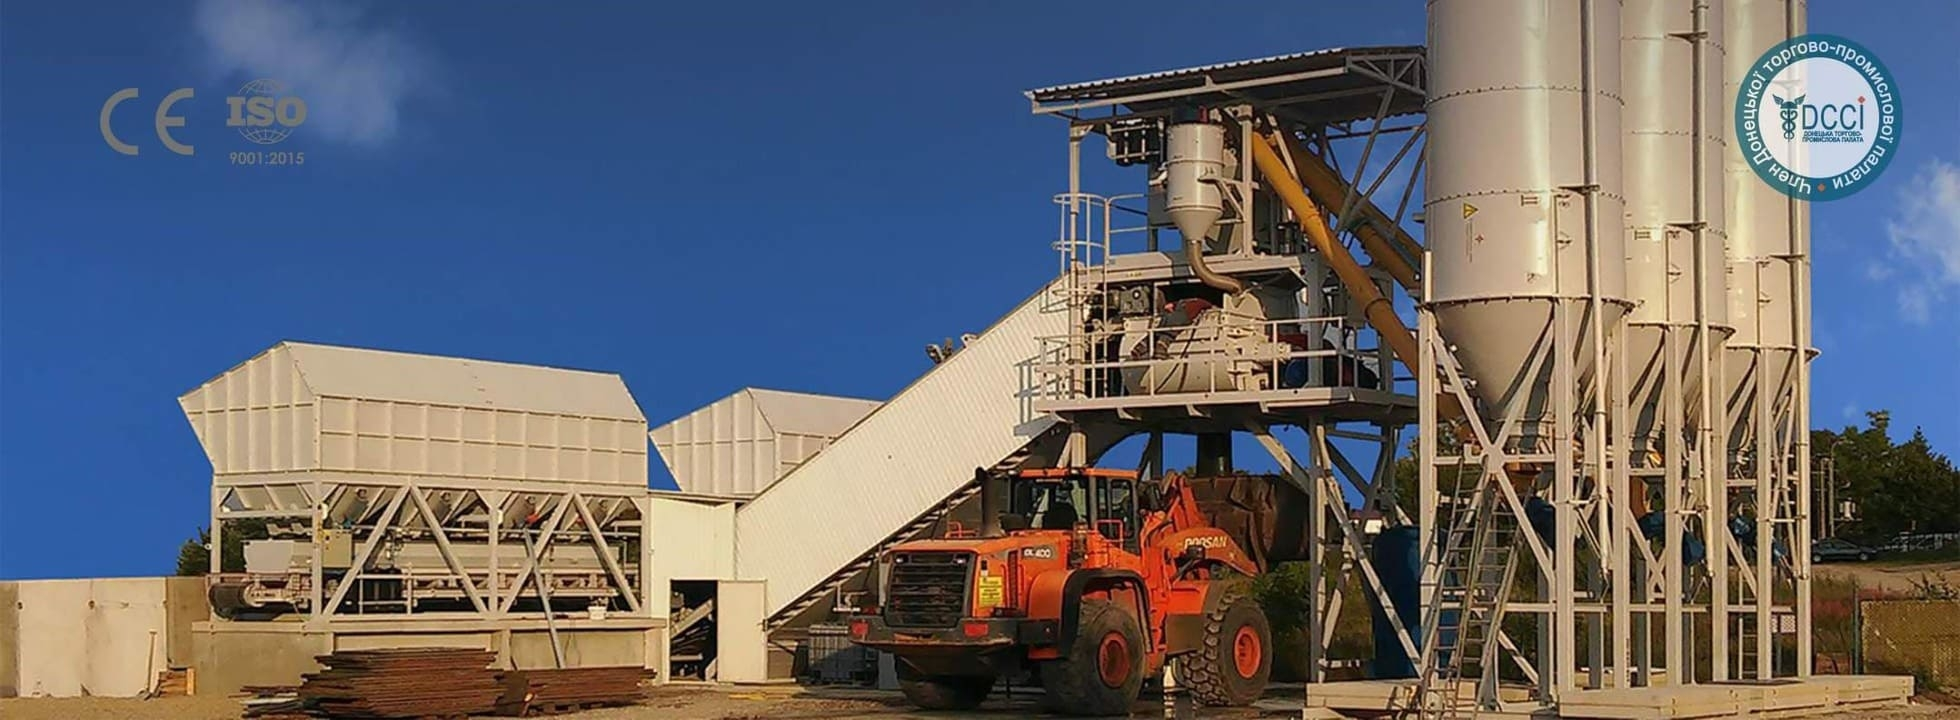 Machine-building plant Betonmash Ukraine